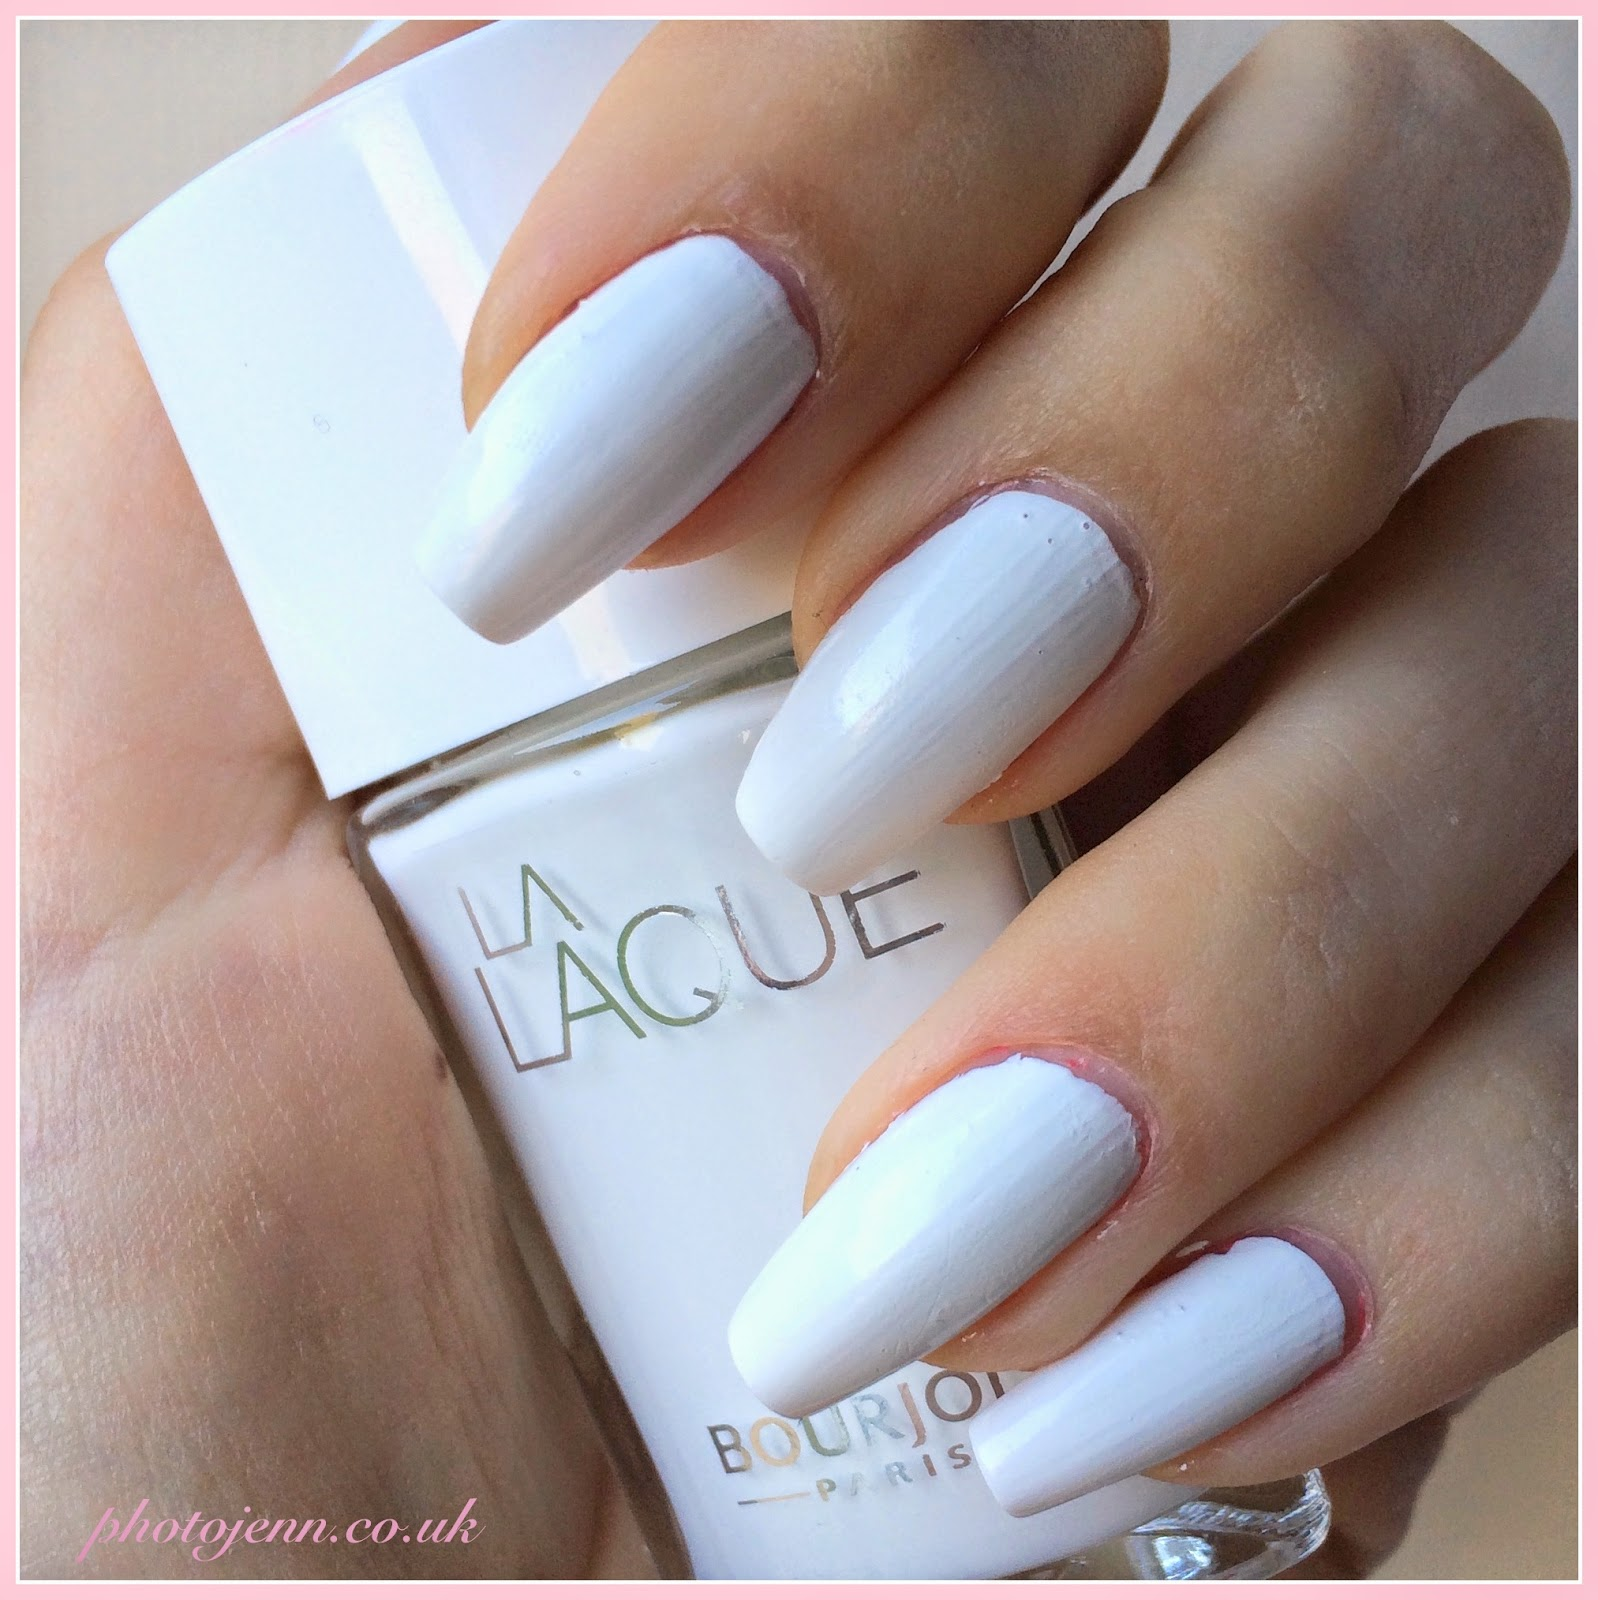 bourjois-la-laque-nail-polish-white-spirit-swatch